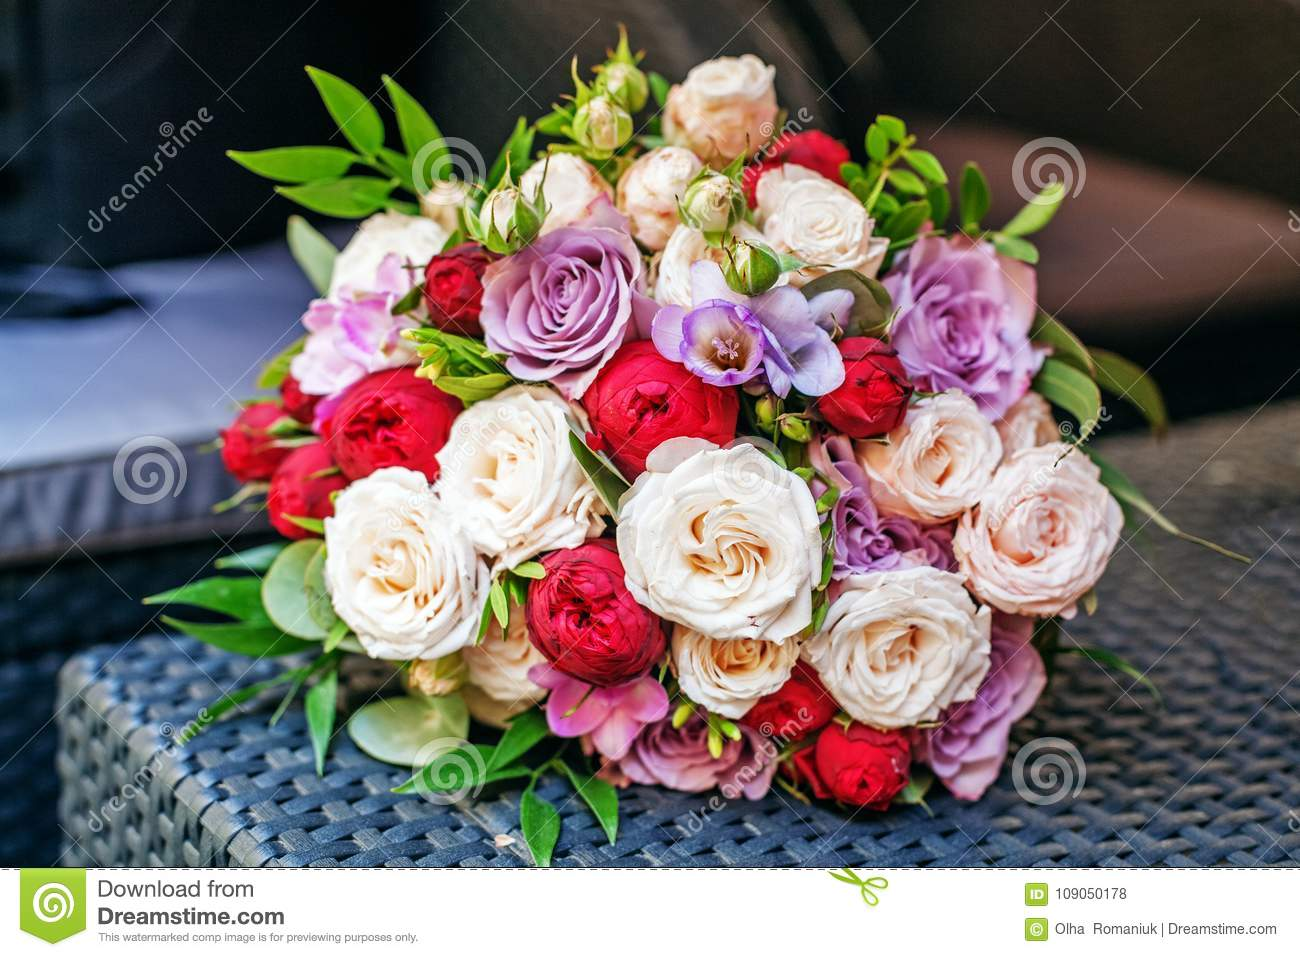 Beautiful Flower Bouquet Romantic Meeting The Concept Of Marri